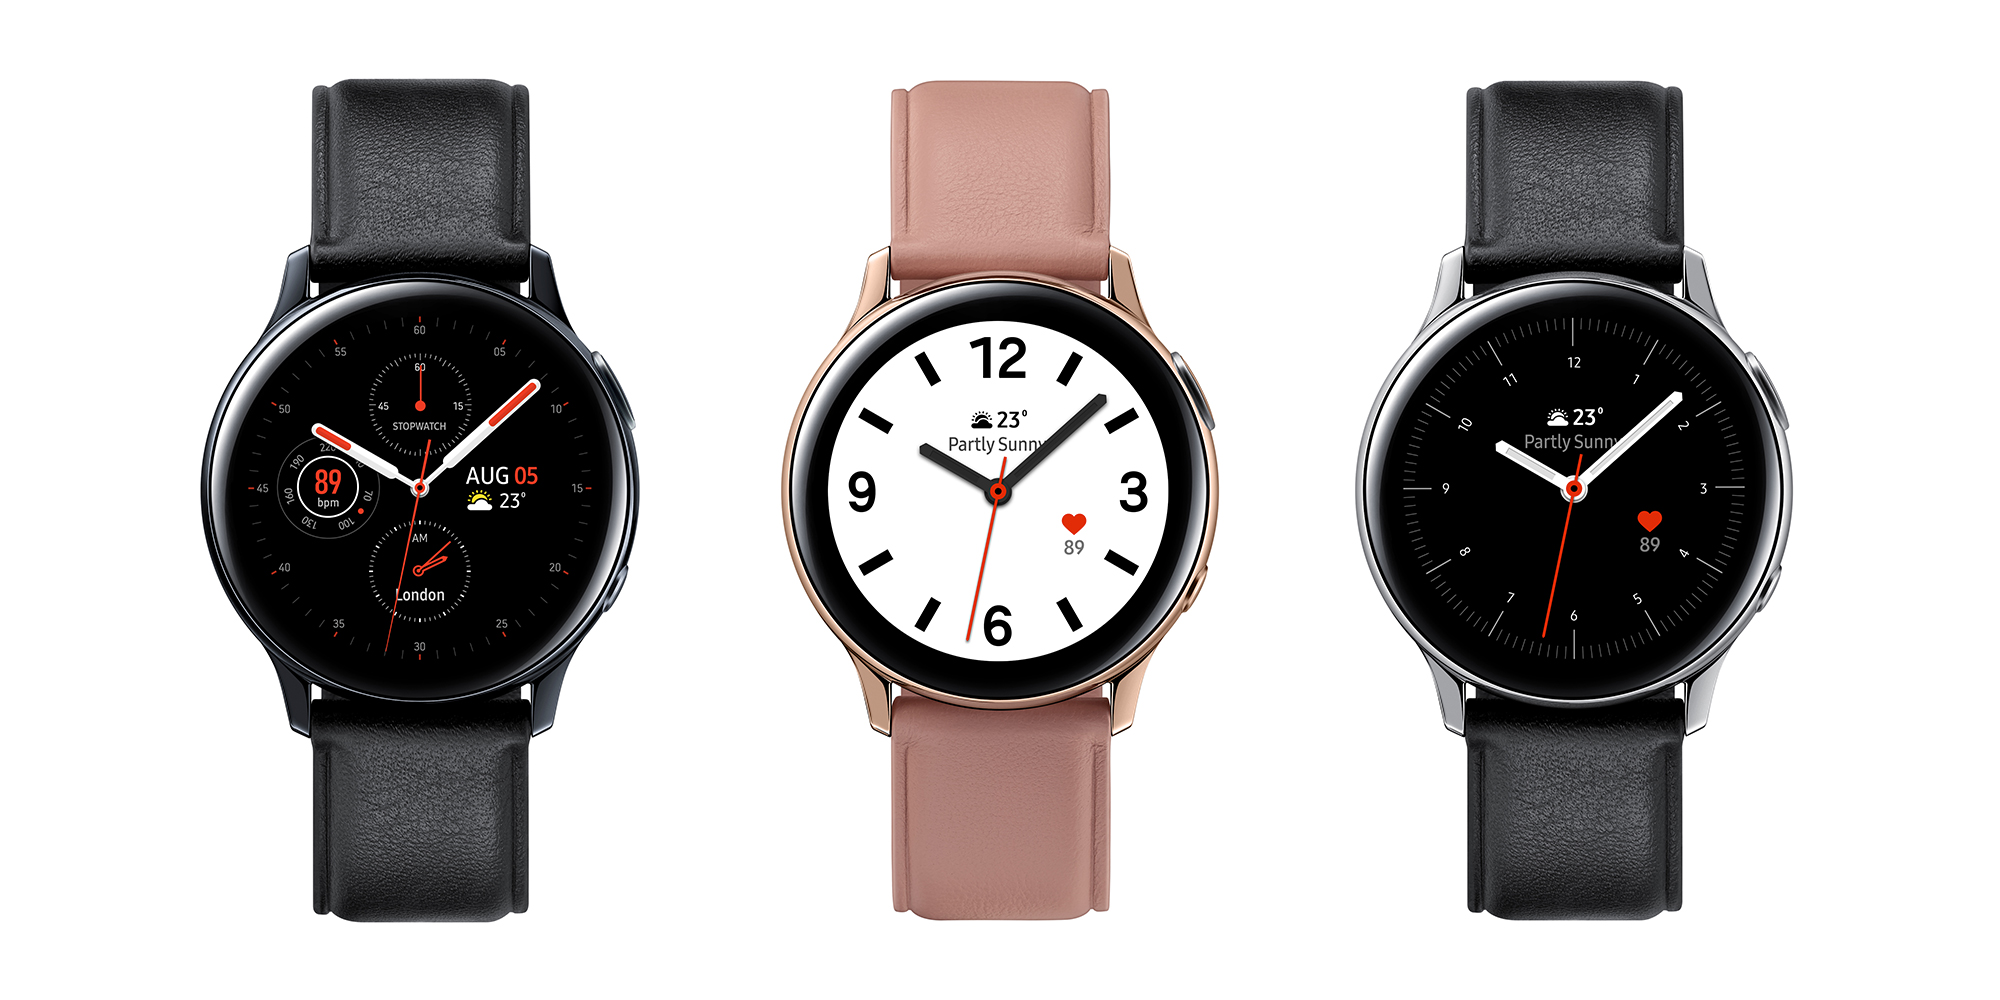 Samsung Galaxy Watch Active2 - stainless steel/leather strap versions